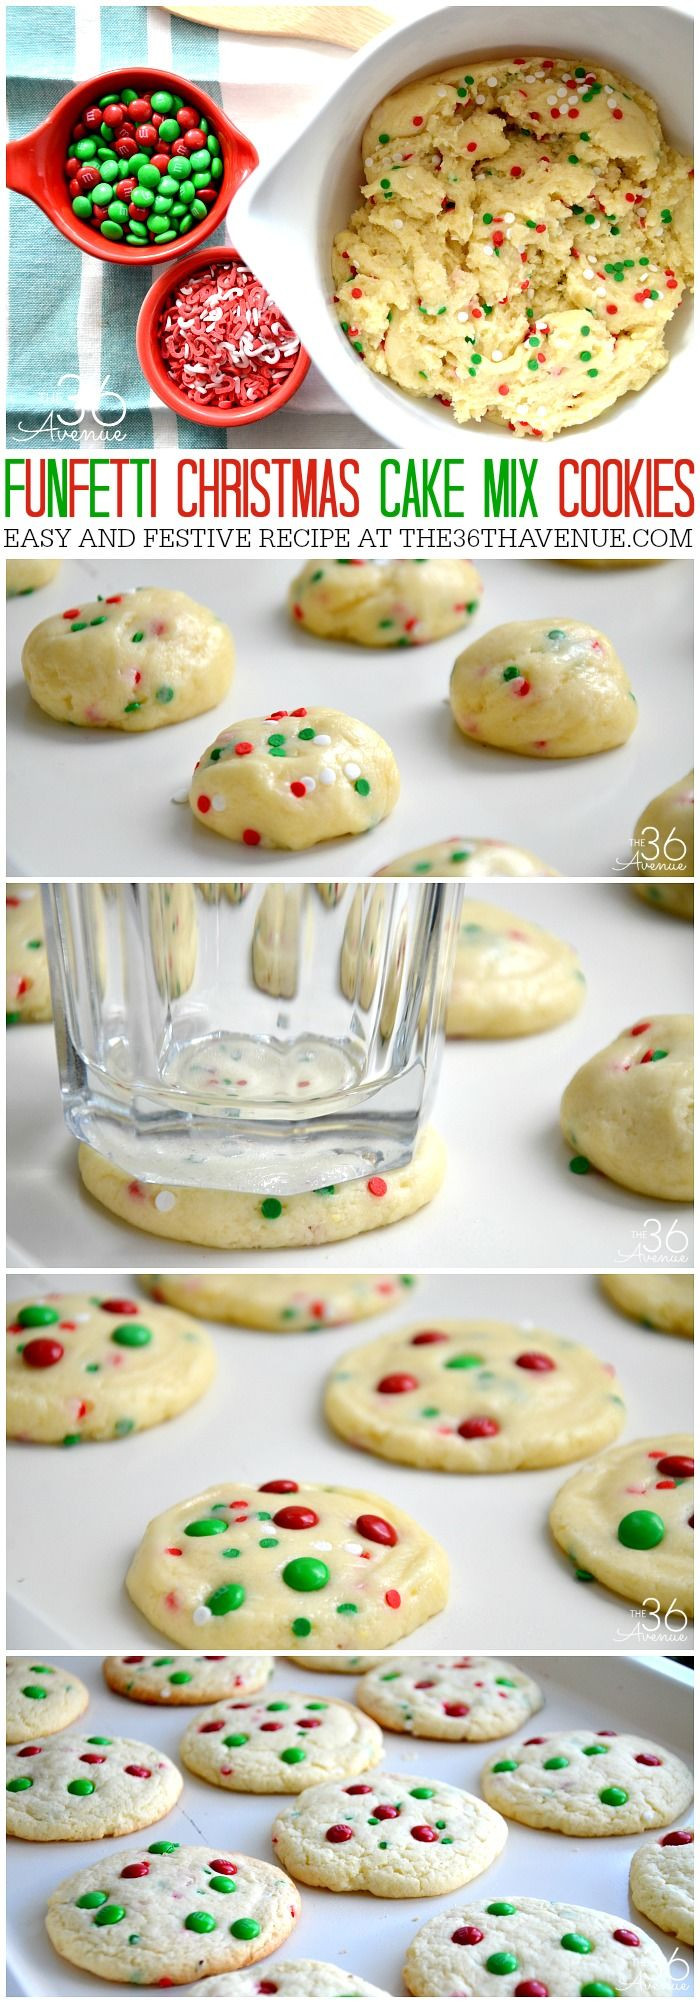 Cake Mix Christmas Cookies  Funfetti Christmas Cake Mix Cookies s and